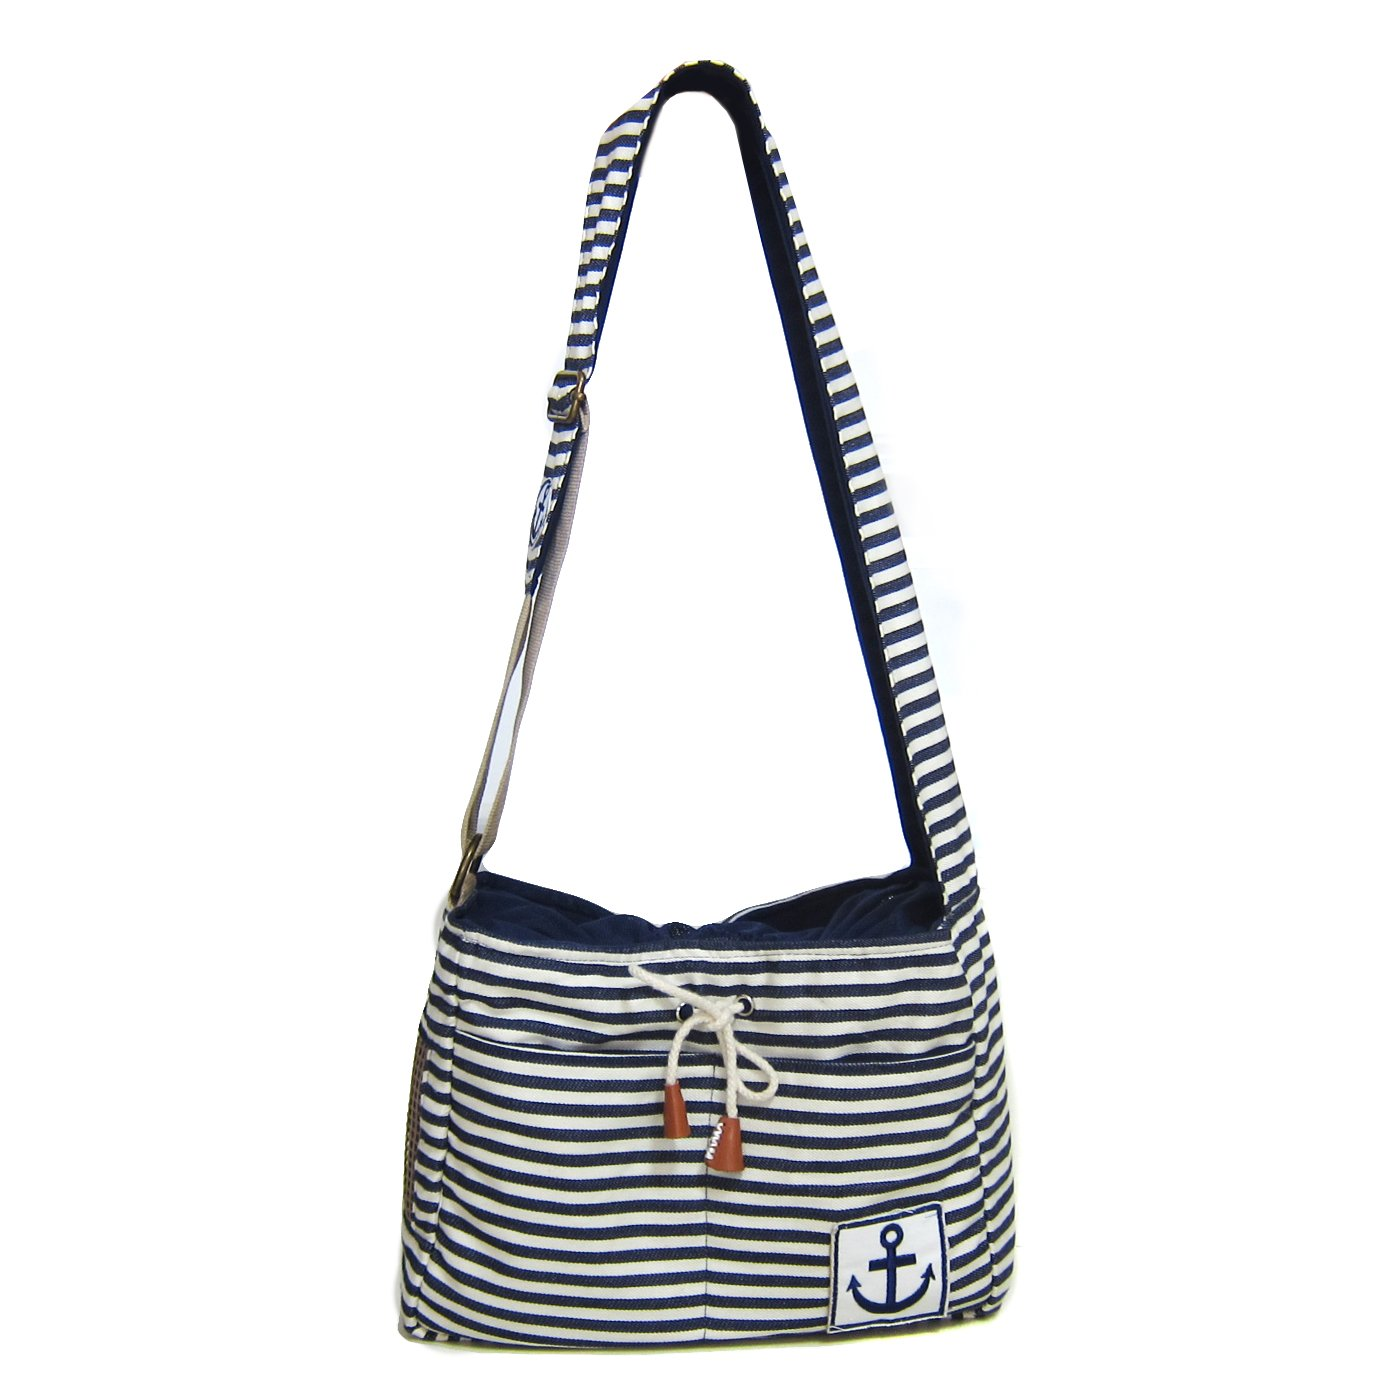 Alfie Pet by Petoga Couture - Rei Pet Sling Carrier with Adjustable Strap - Color: Navy, Size: M